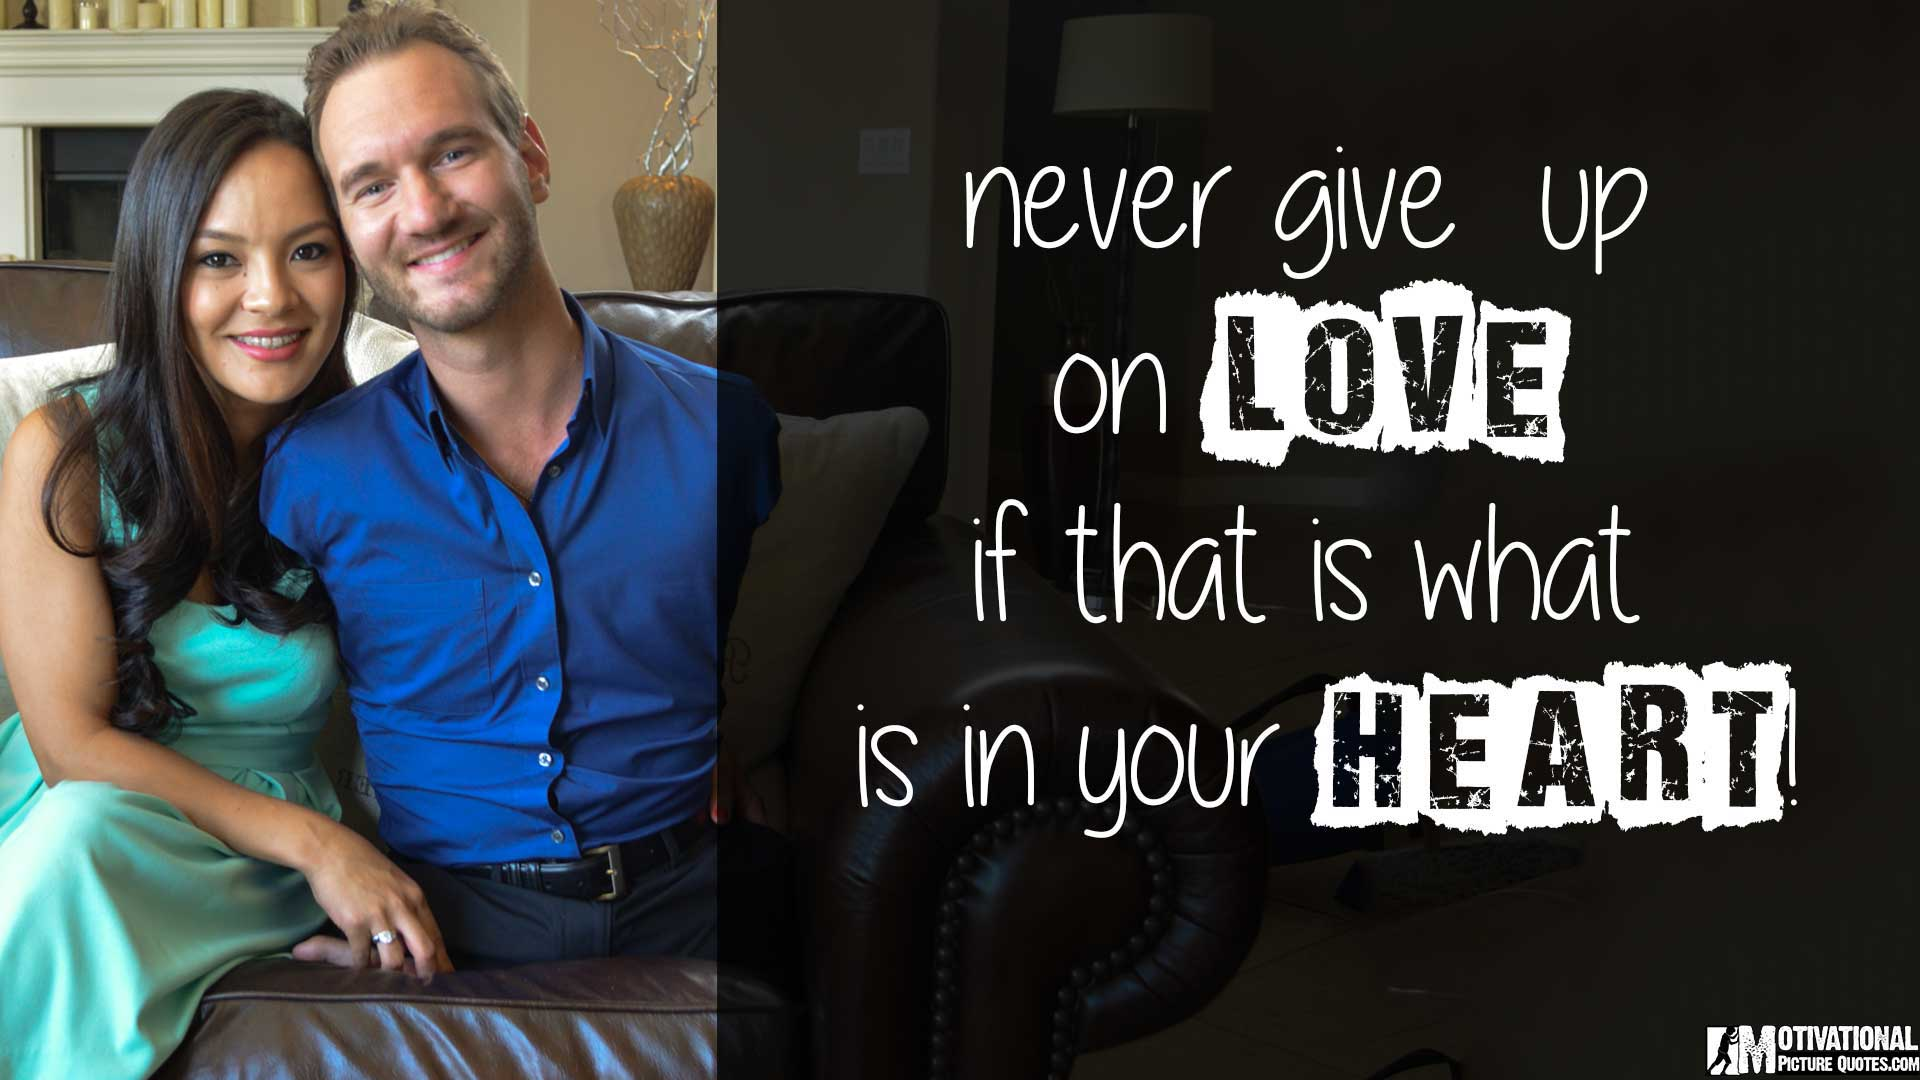 Never Give Up Quotes Wallpaper 12 Inspirational Nick Vujicic Quotes About Life Amp Love